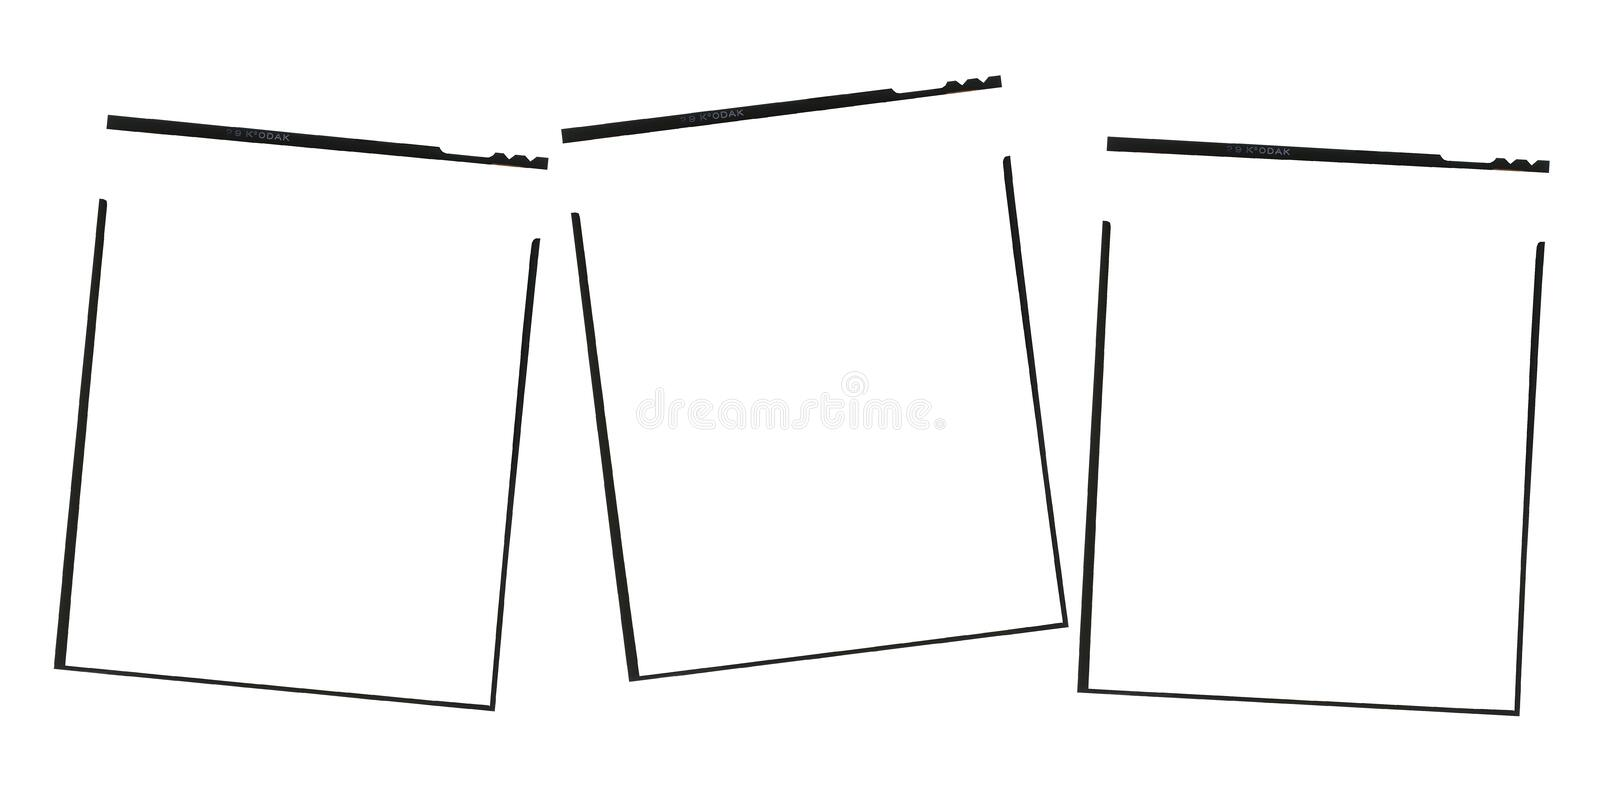 Film frame. For graphic design with photos royalty free stock photo